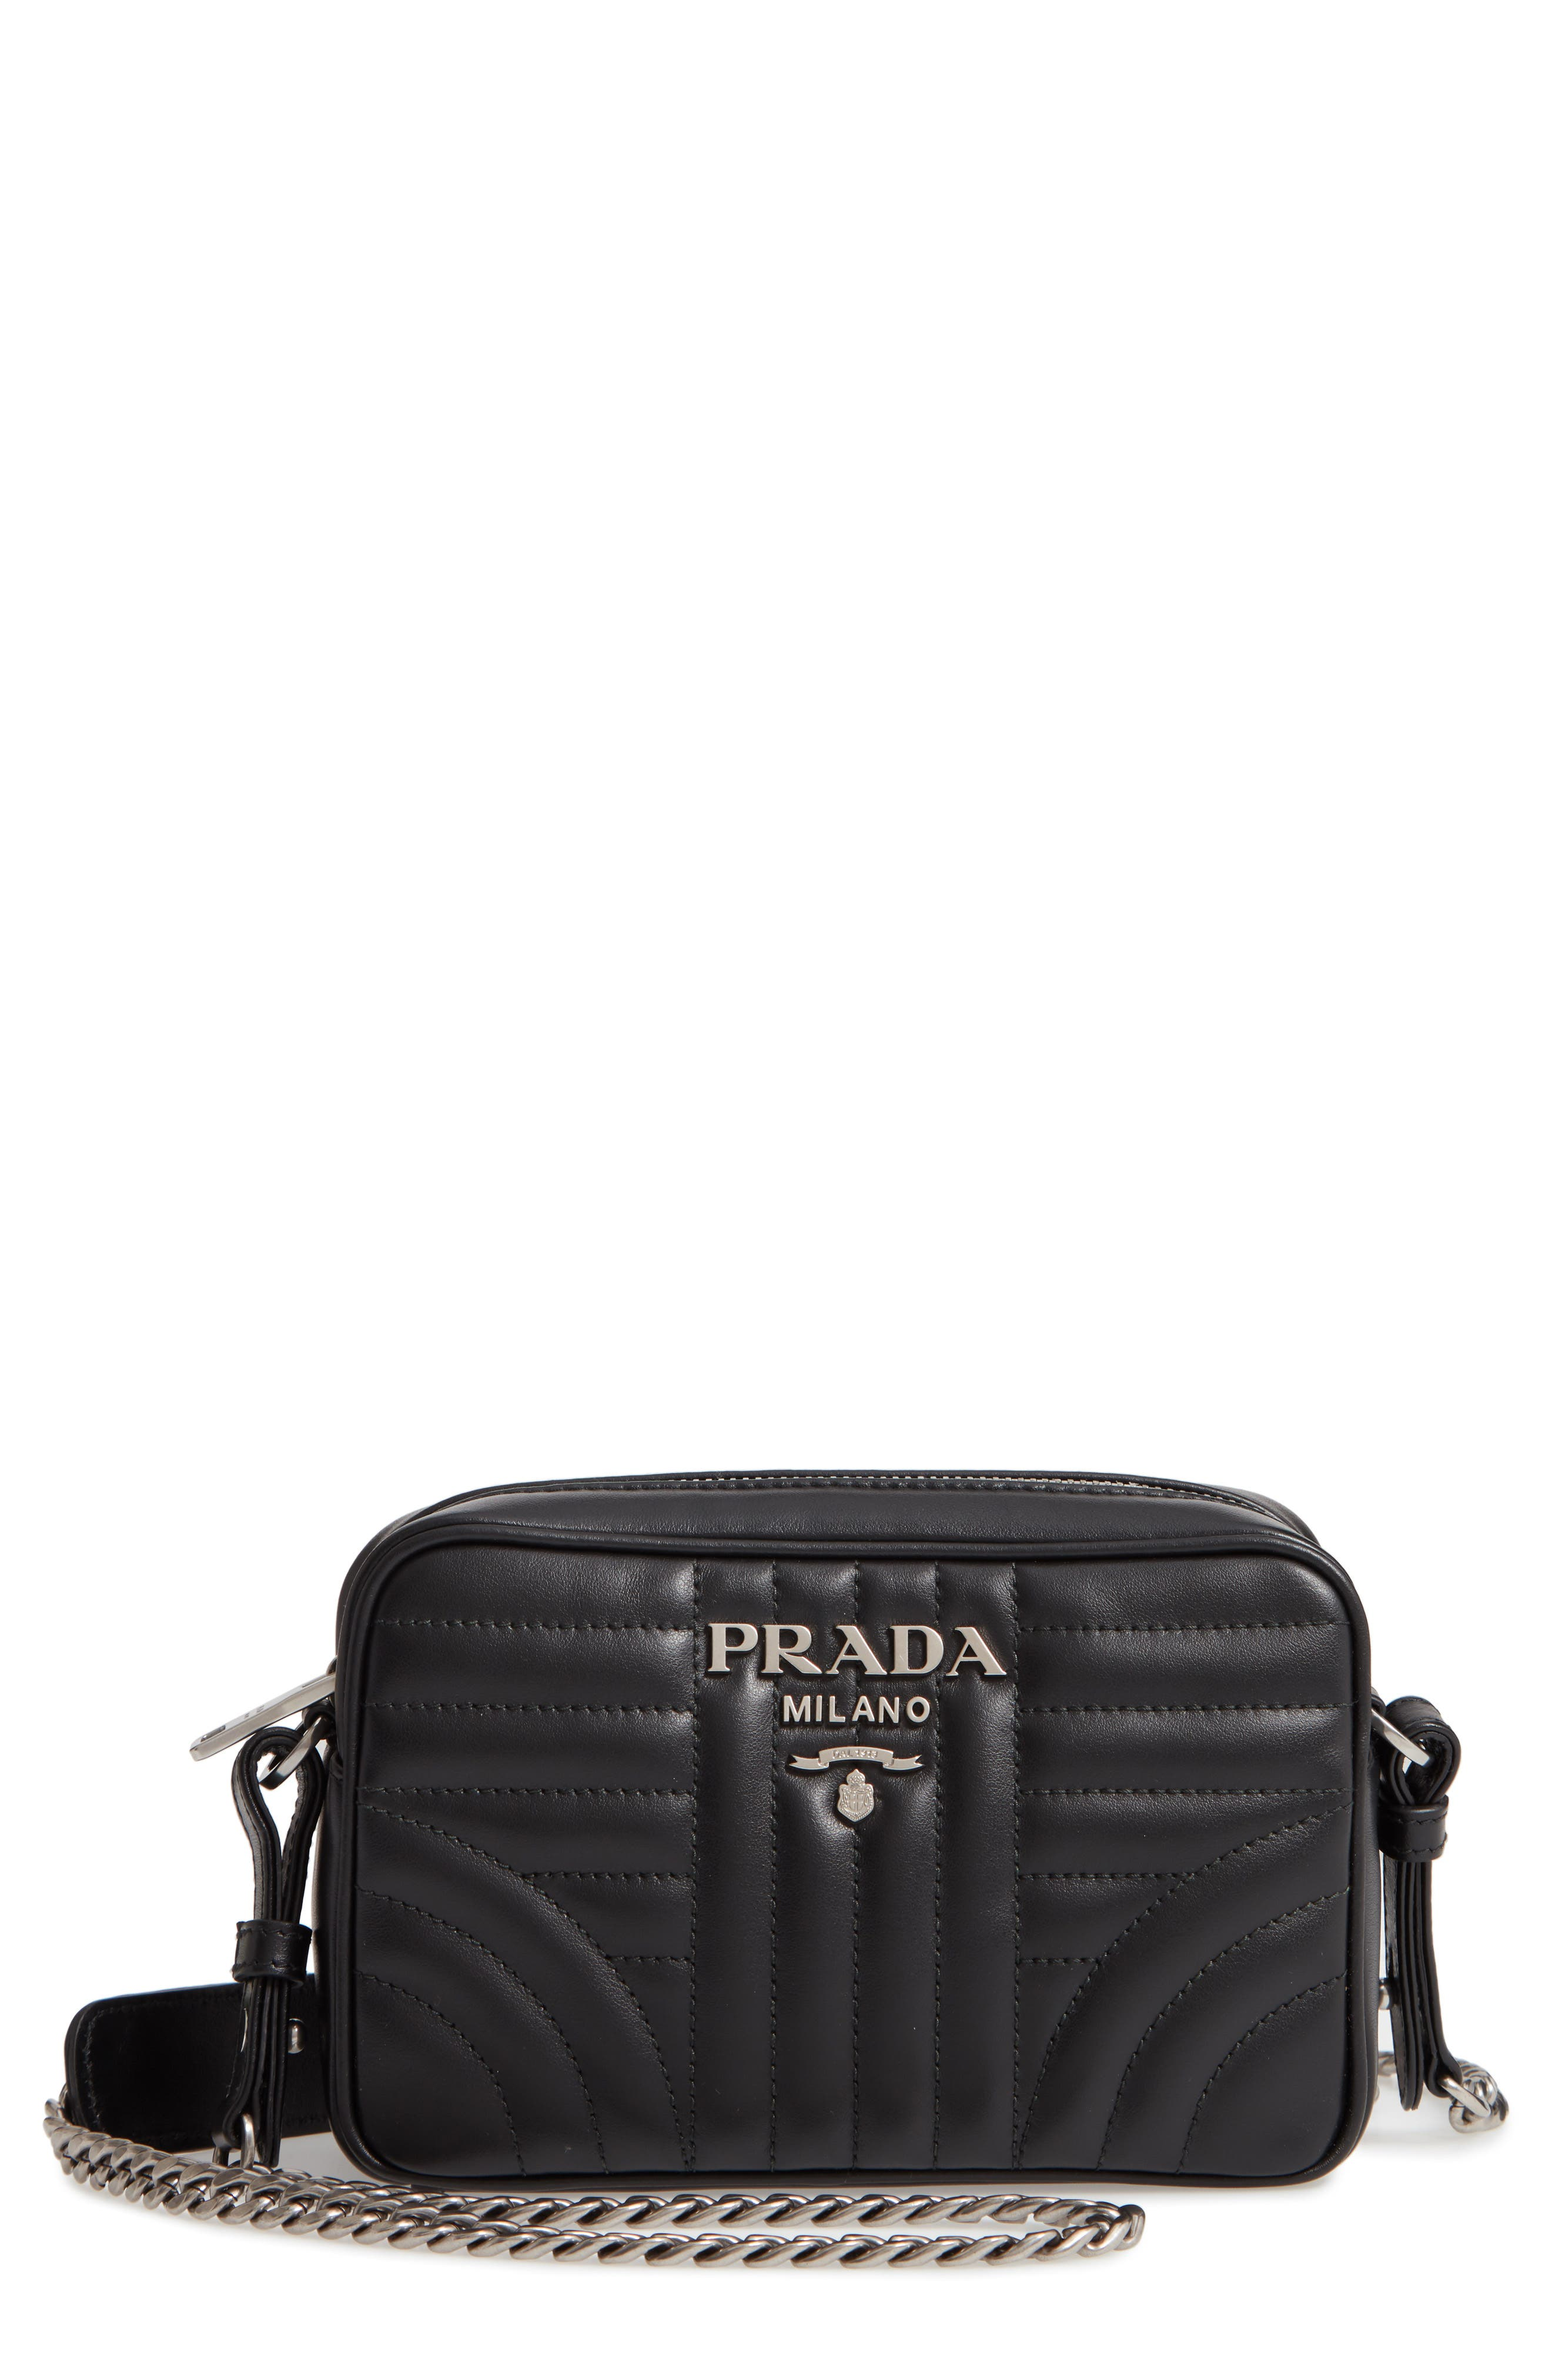 f06b08e8e74 italy womens prada saffiano leather handbags poshmark 1b850 56280  czech prada  diagramme camera bag 6a3cc fccd6